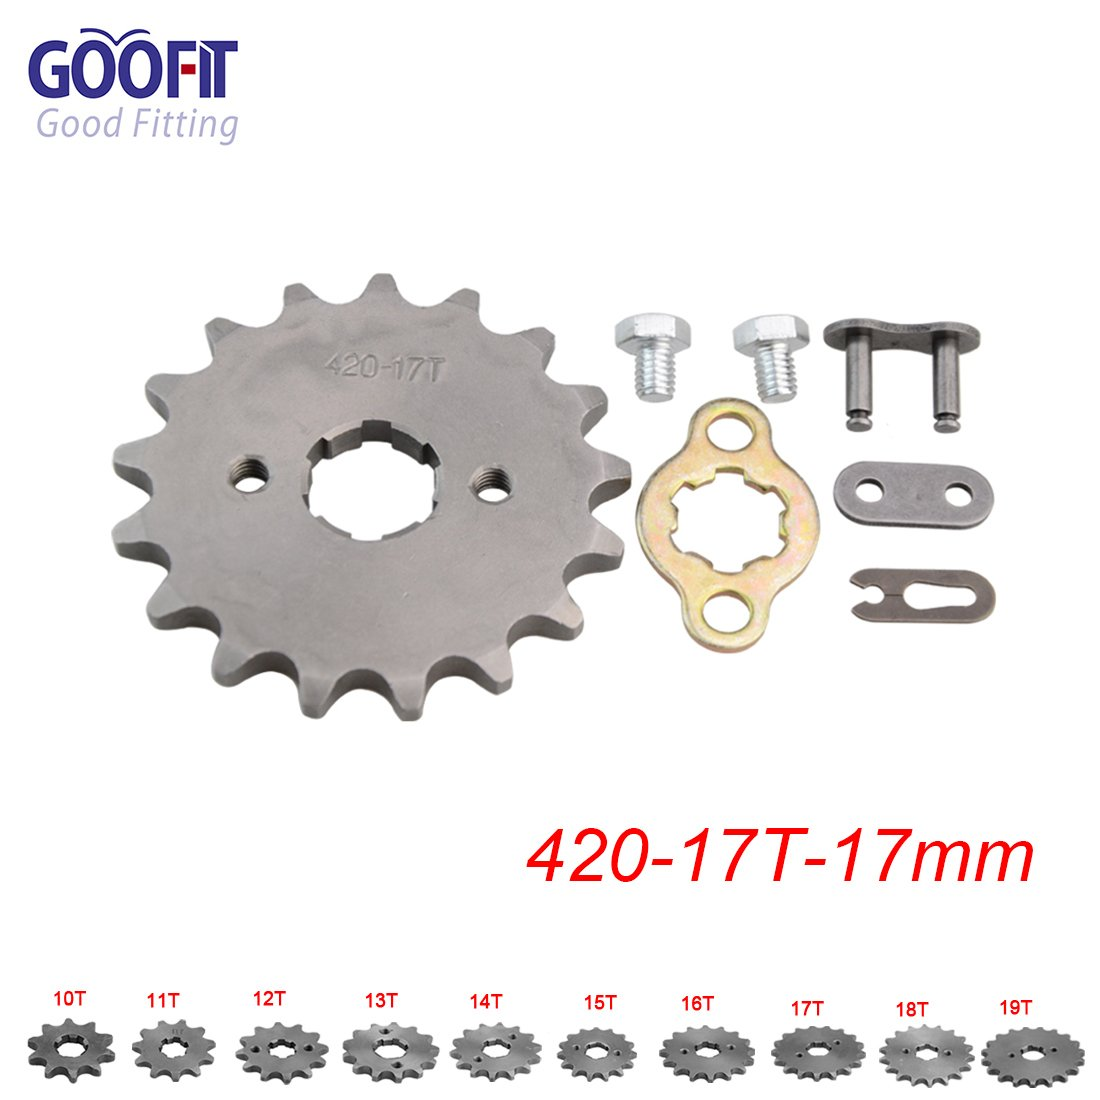 GOOFIT 420 15 17mm Tooth Front Engine motorcycle Sprocket Chain Retainer Plate LockerEngine For 50cc 70cc 90cc 110cc Motorcycle Dirt Bike ATV Quad